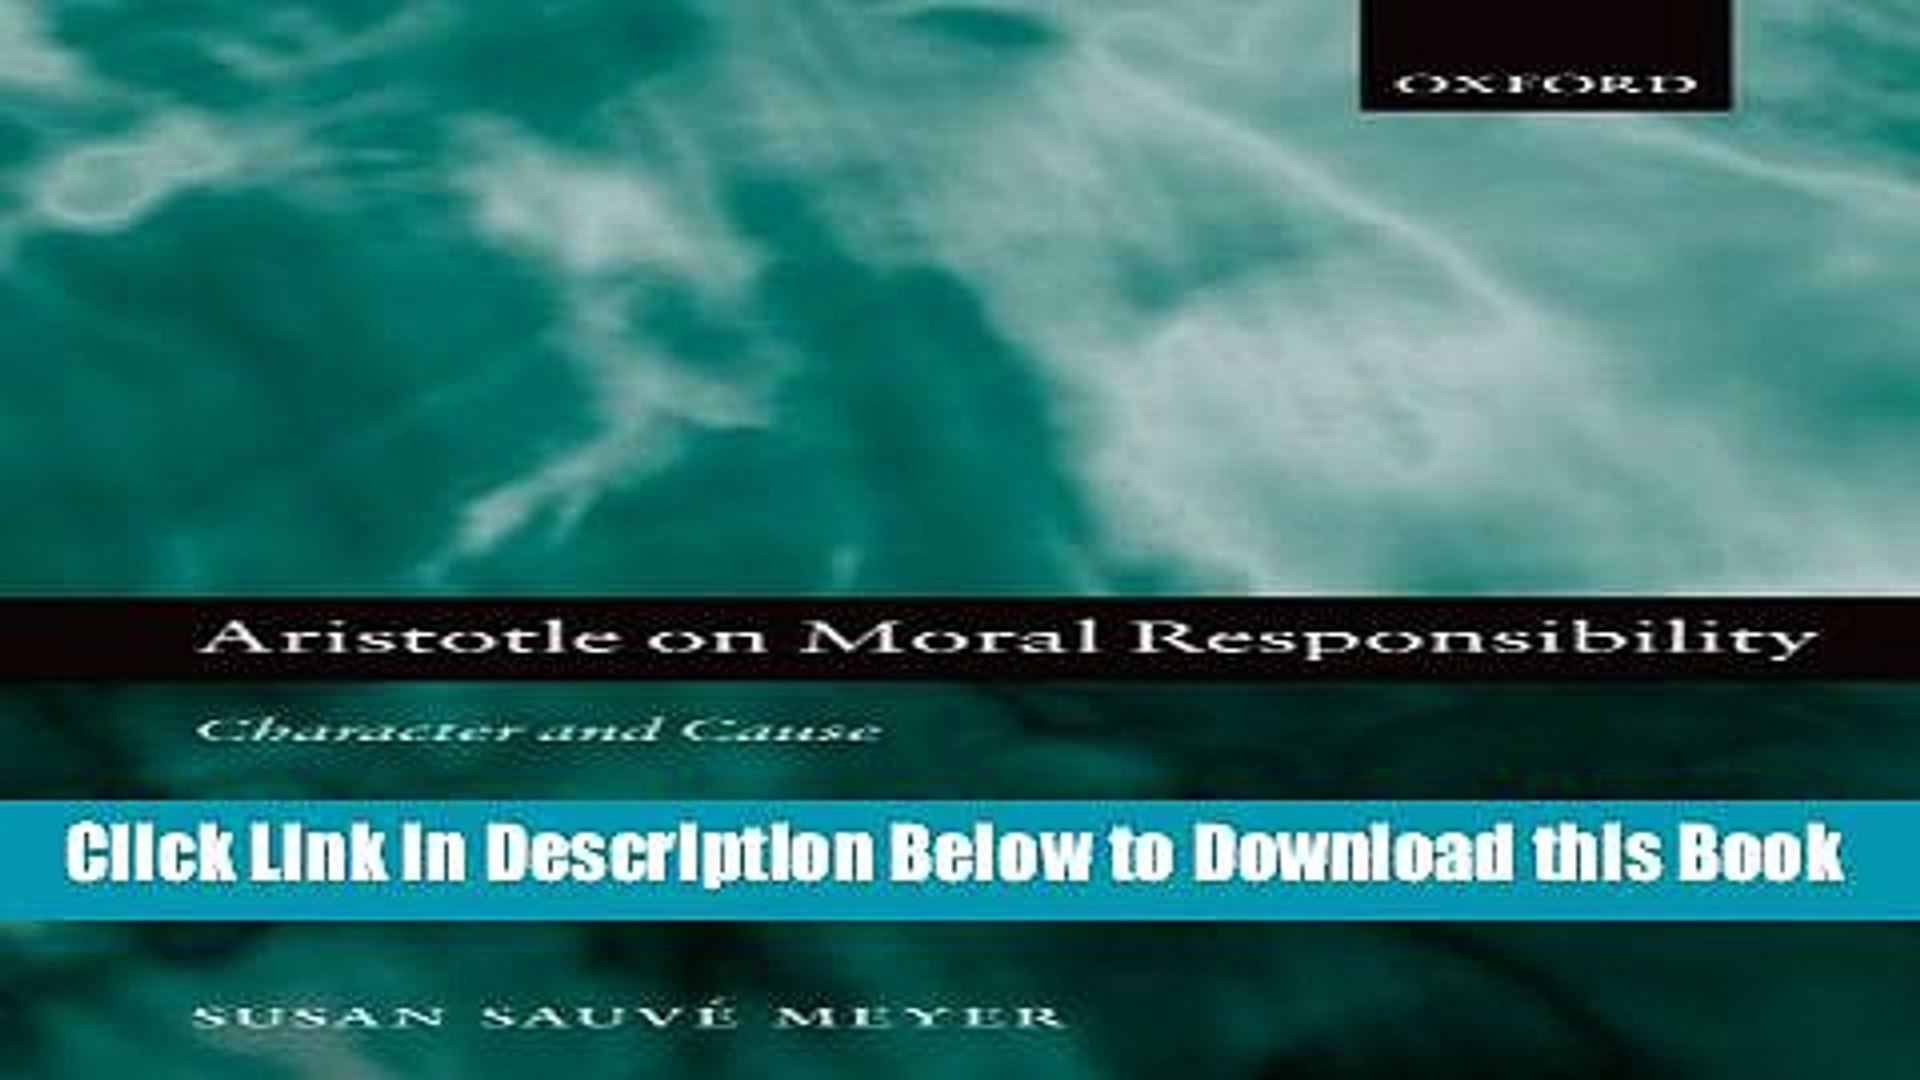 Moral Responsibility: The Ways of Scepticism (Routledge Studies in Ethics and Moral Theory)